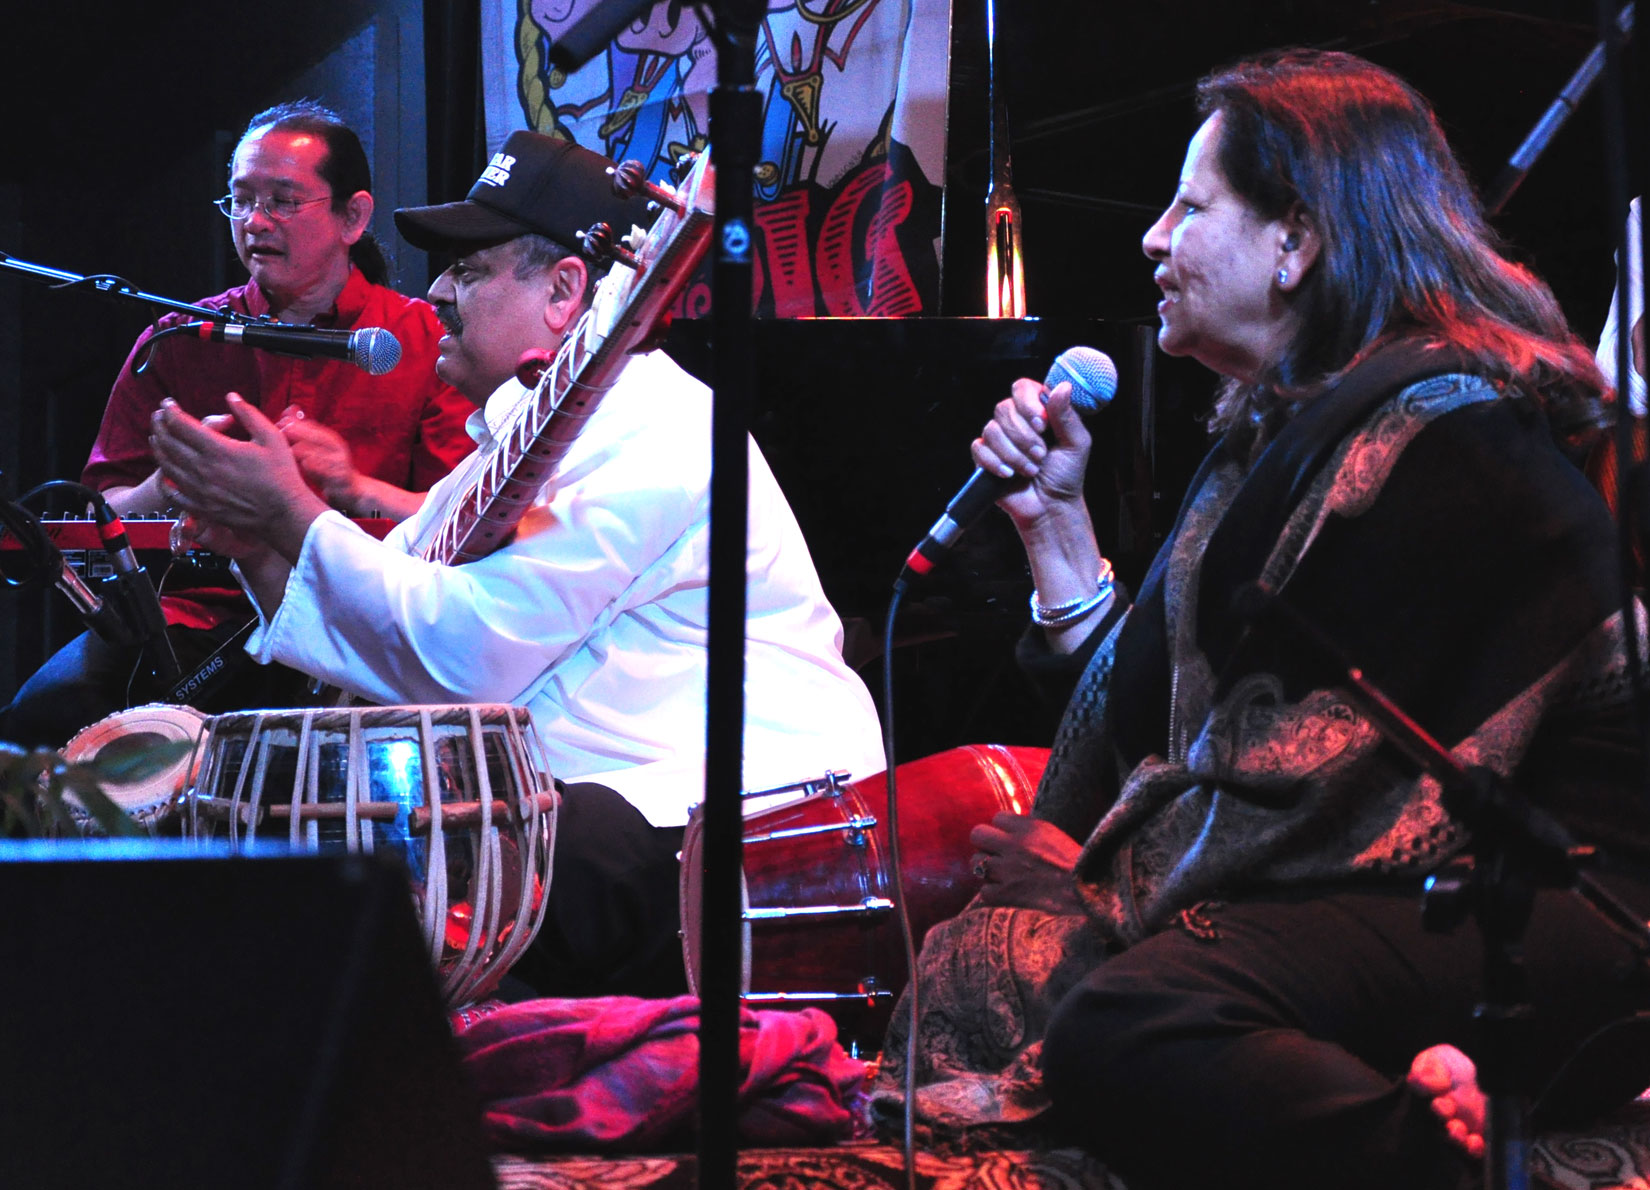 World Beat Raga Rock! Ashwin Batish live at the Kuumbawa Jazz Center, Santa Cruz. All rights reserved. �2012 Ashwin Batish. Copyrighted image. Photographer Chris Bratt